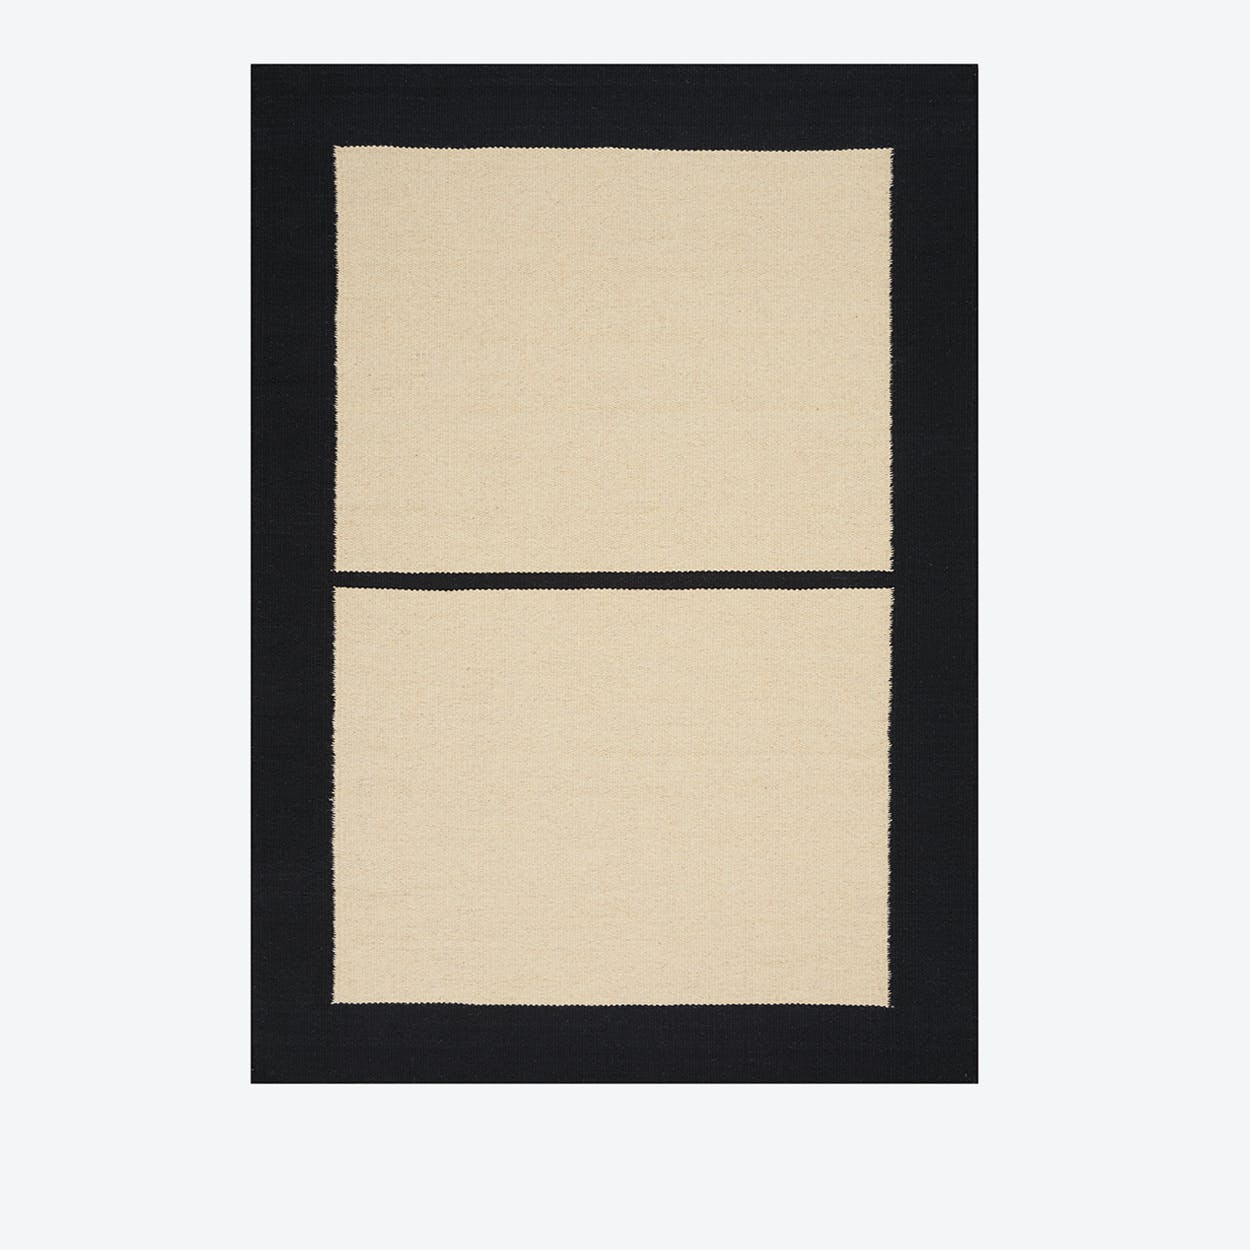 NASHVILLE 753 Rug in Ivory & Black